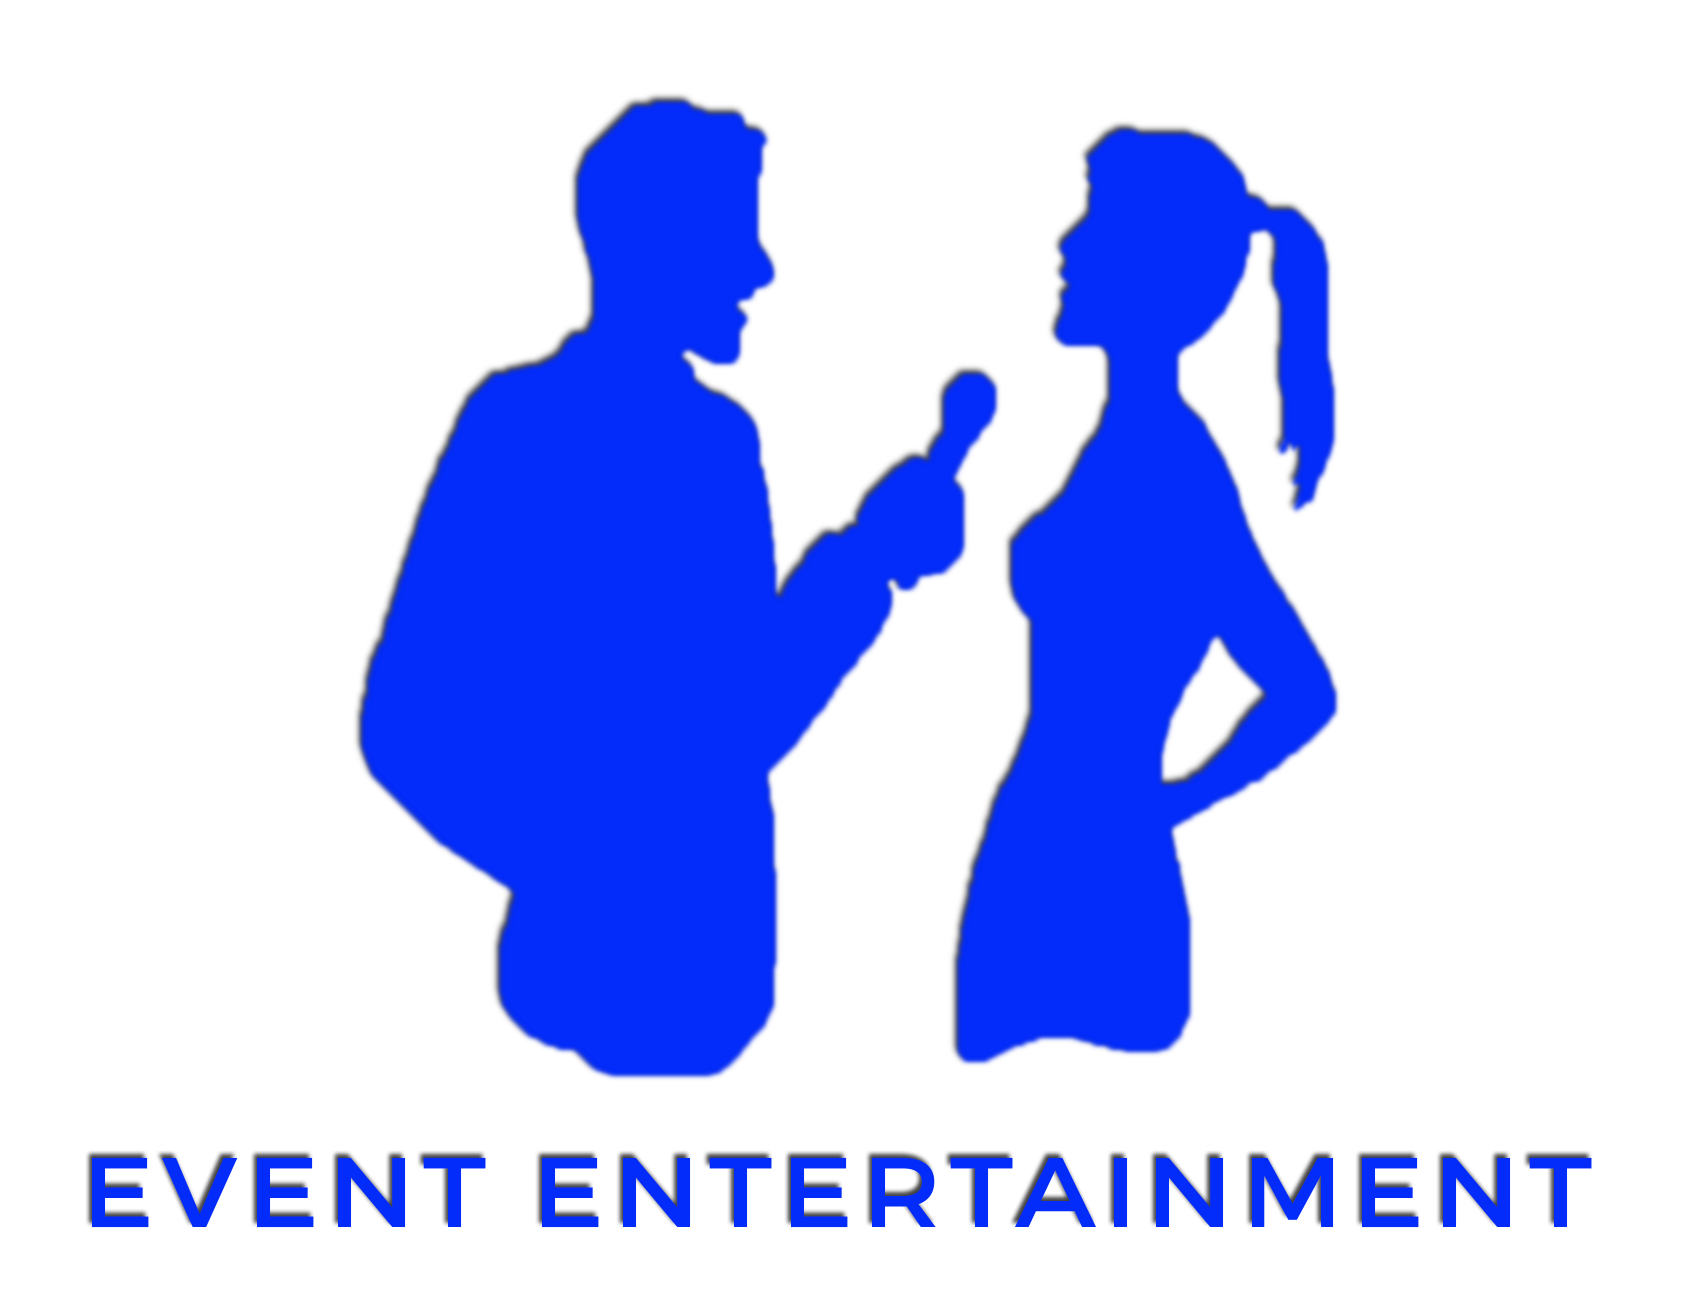 RFE event entertainment.png